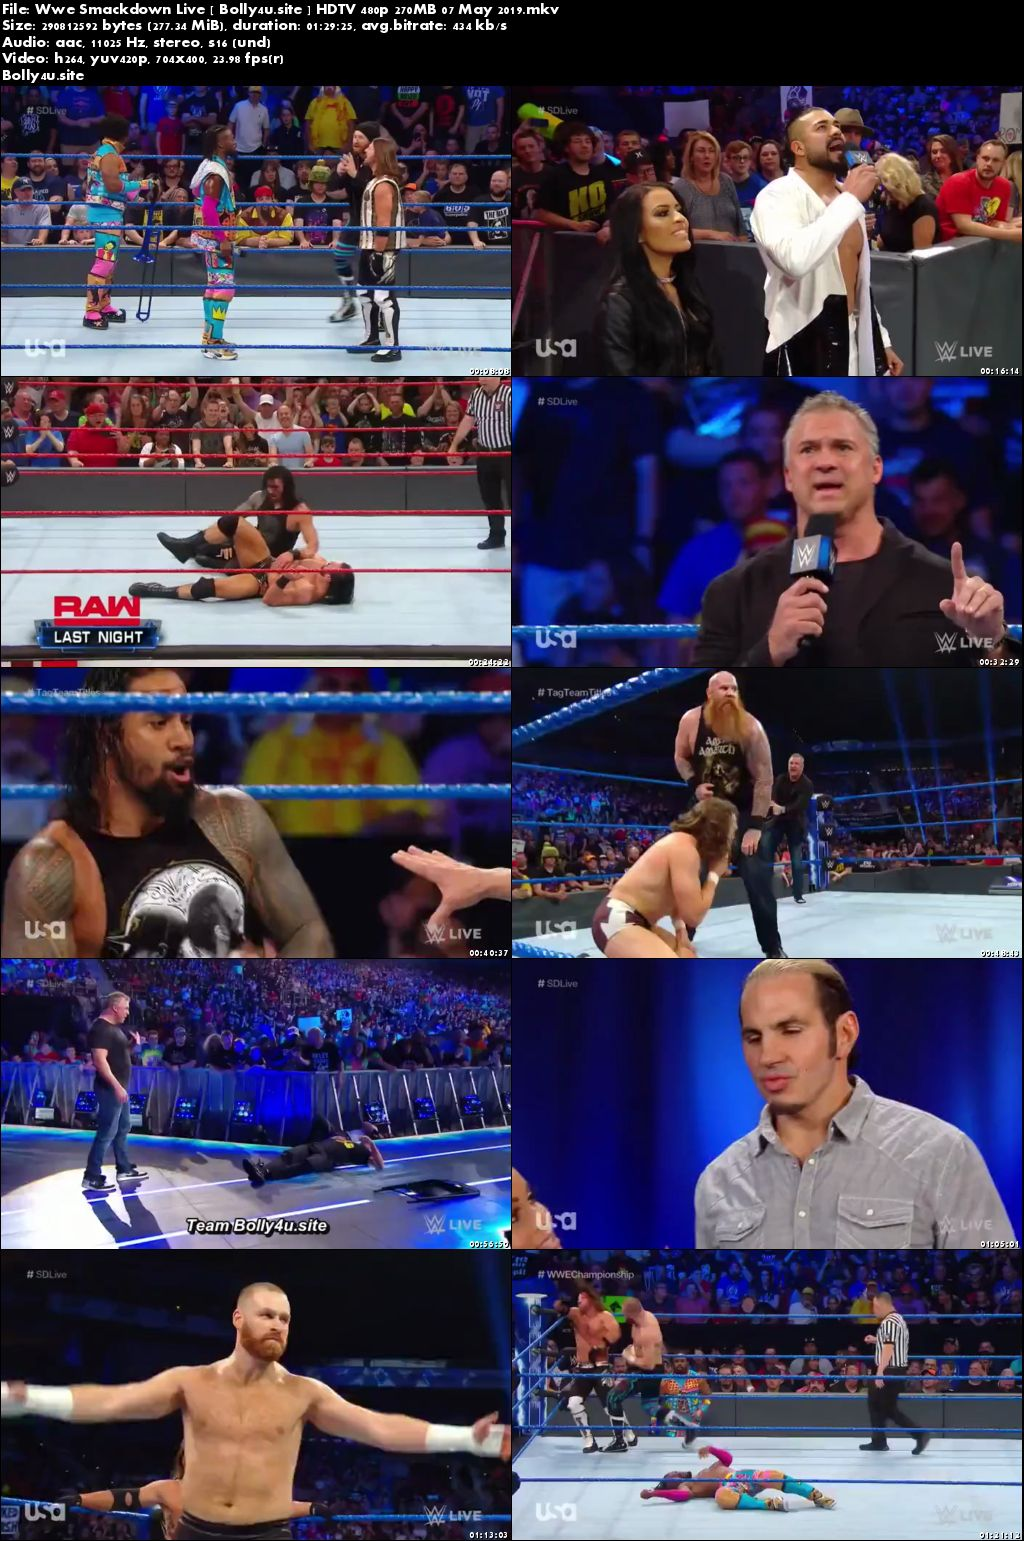 Wwe Smackdown Live HDTV 480p 270MB 07 May 2019 Download